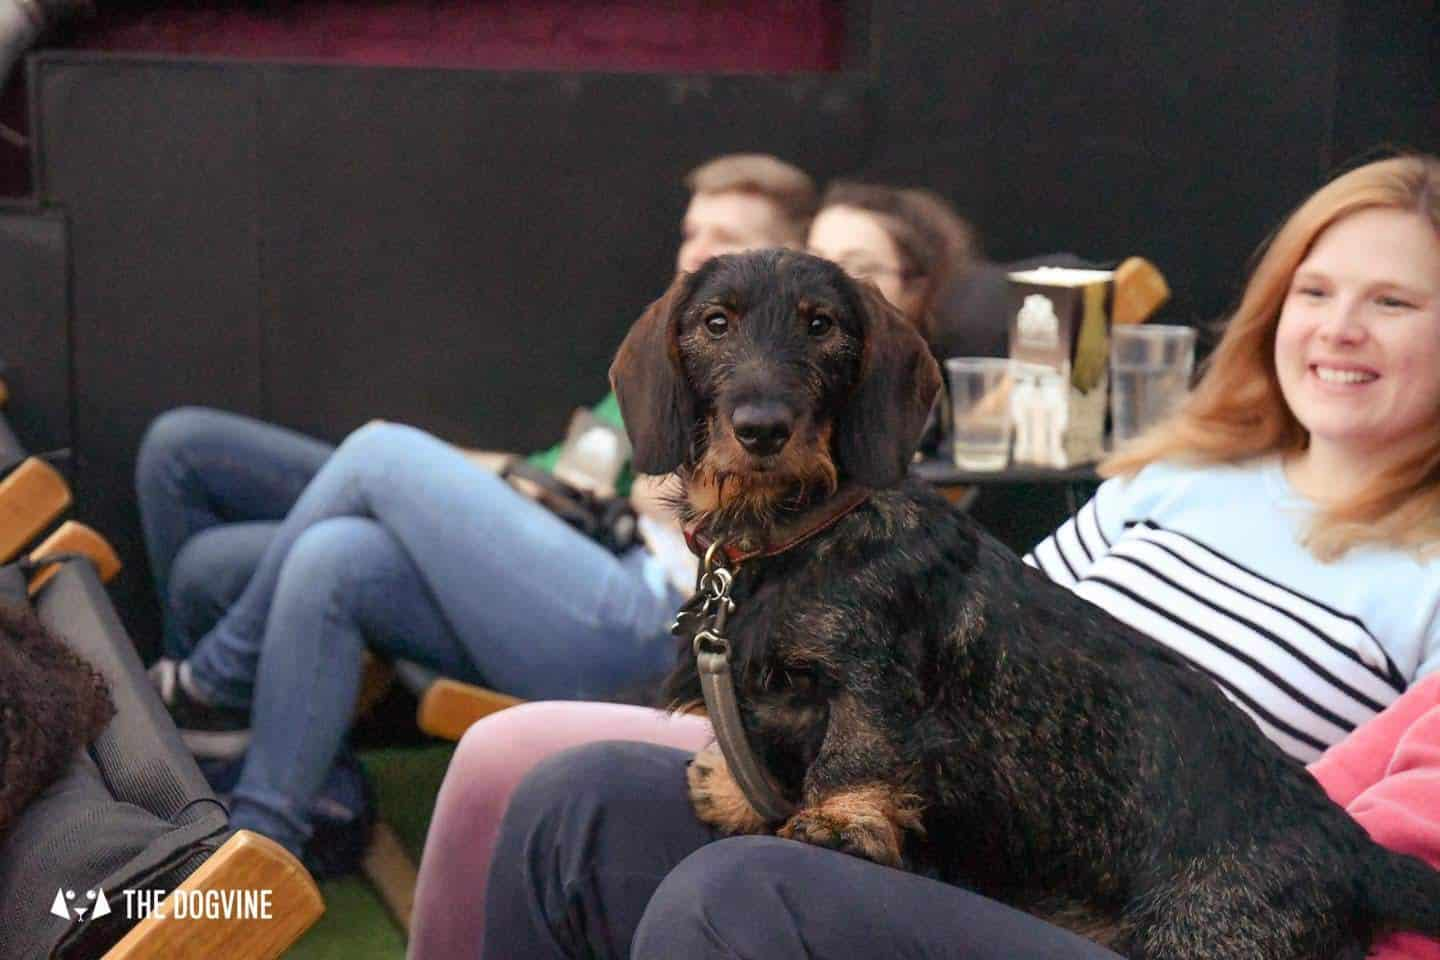 Spectacular Movie Moments at the Dog-friendly Rooftop Film Club 48